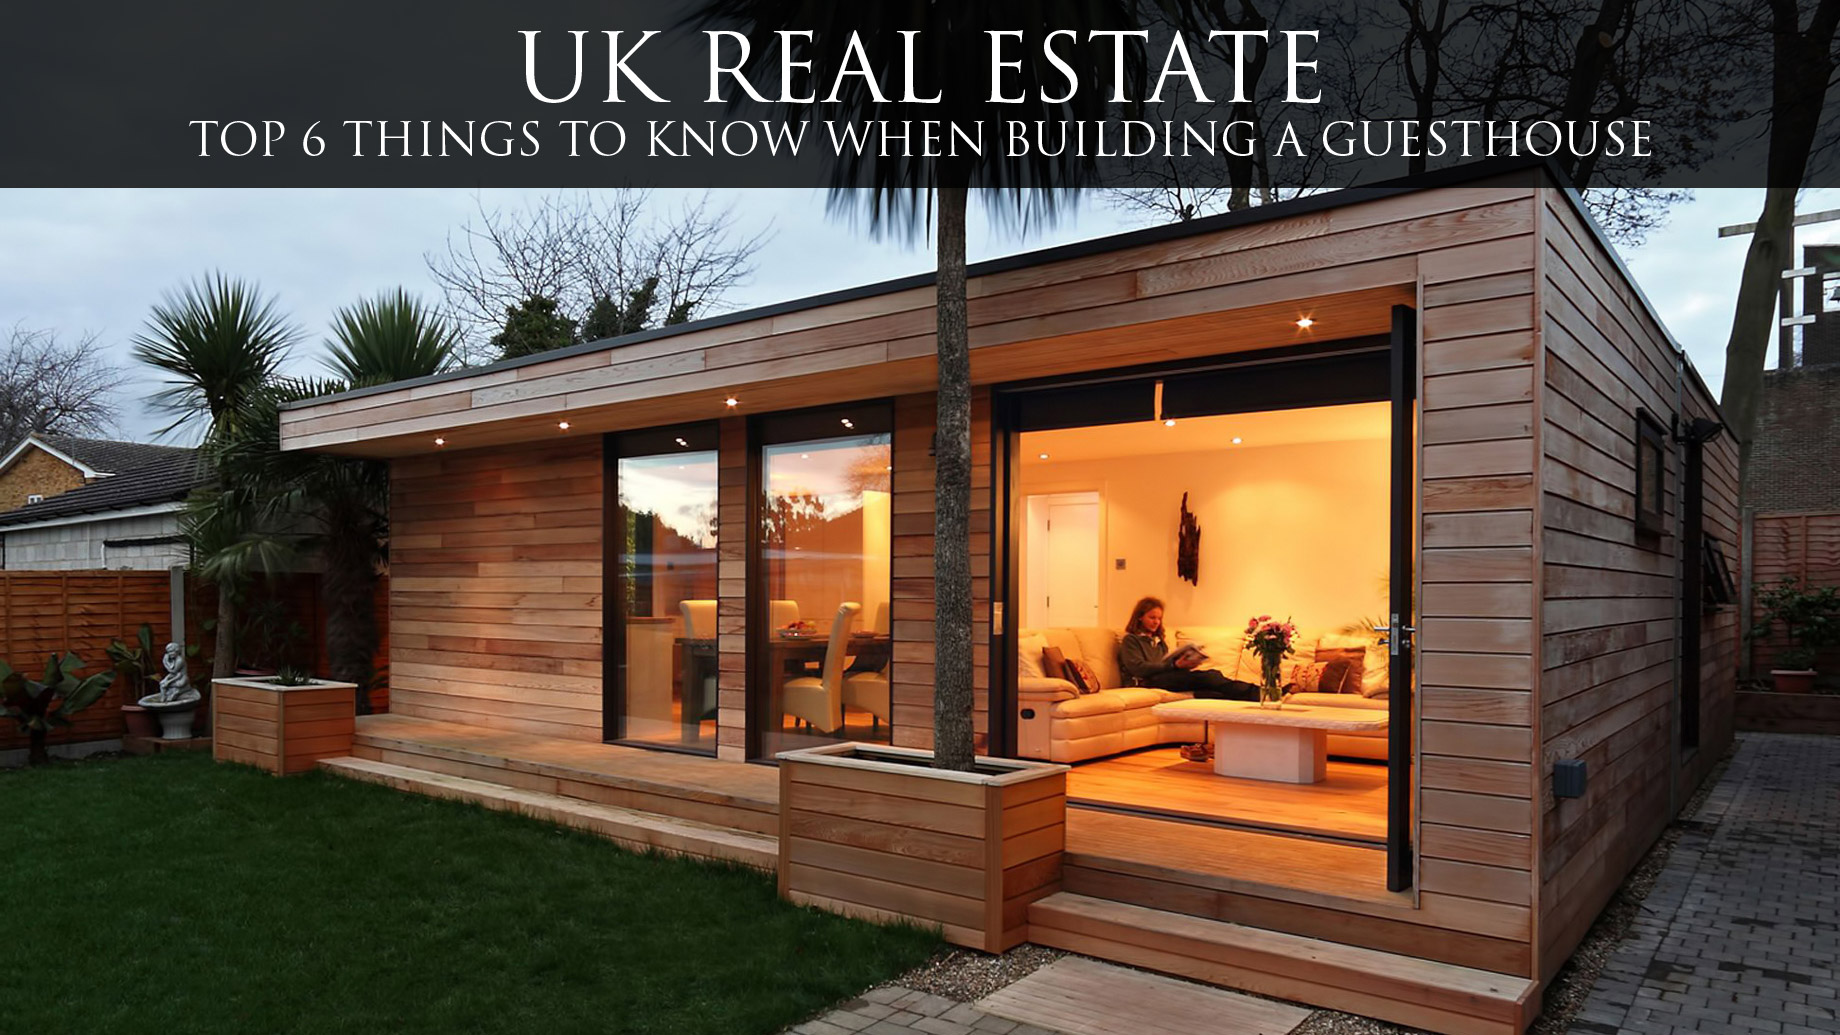 UK Real Estate - Top 6 Things To Know When Building A Guesthouse